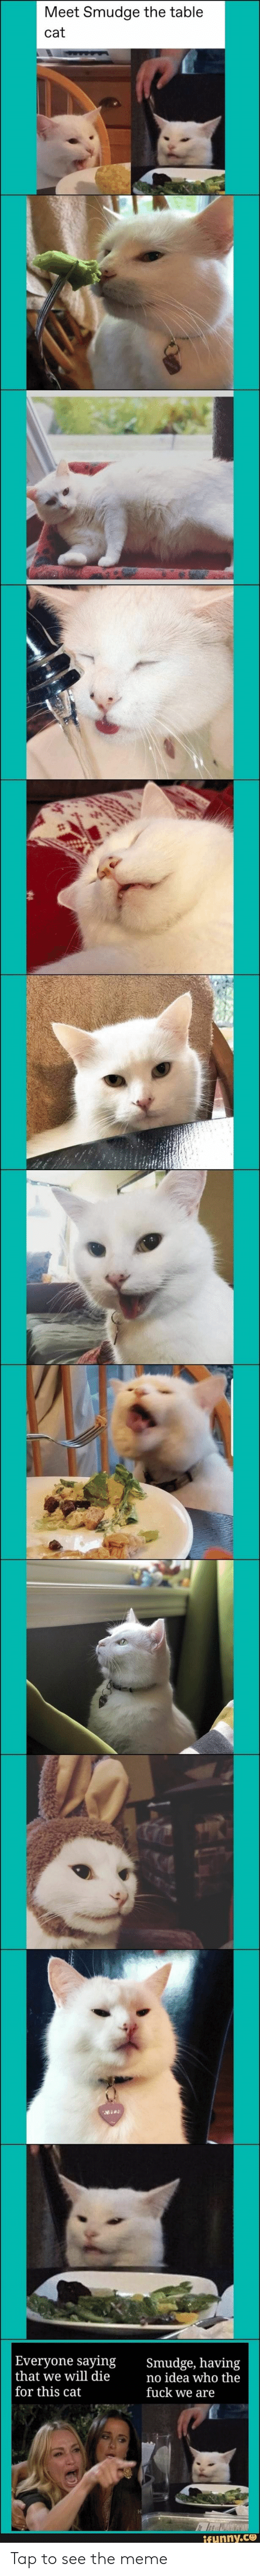 Meme, Idea, and Cat: Meet Smudge the table  cat  |Everyone saying  that we will die  for this cat  Smudge, having  no idea who the  fuck we are  taLA  ifunny.co Tap to see the meme